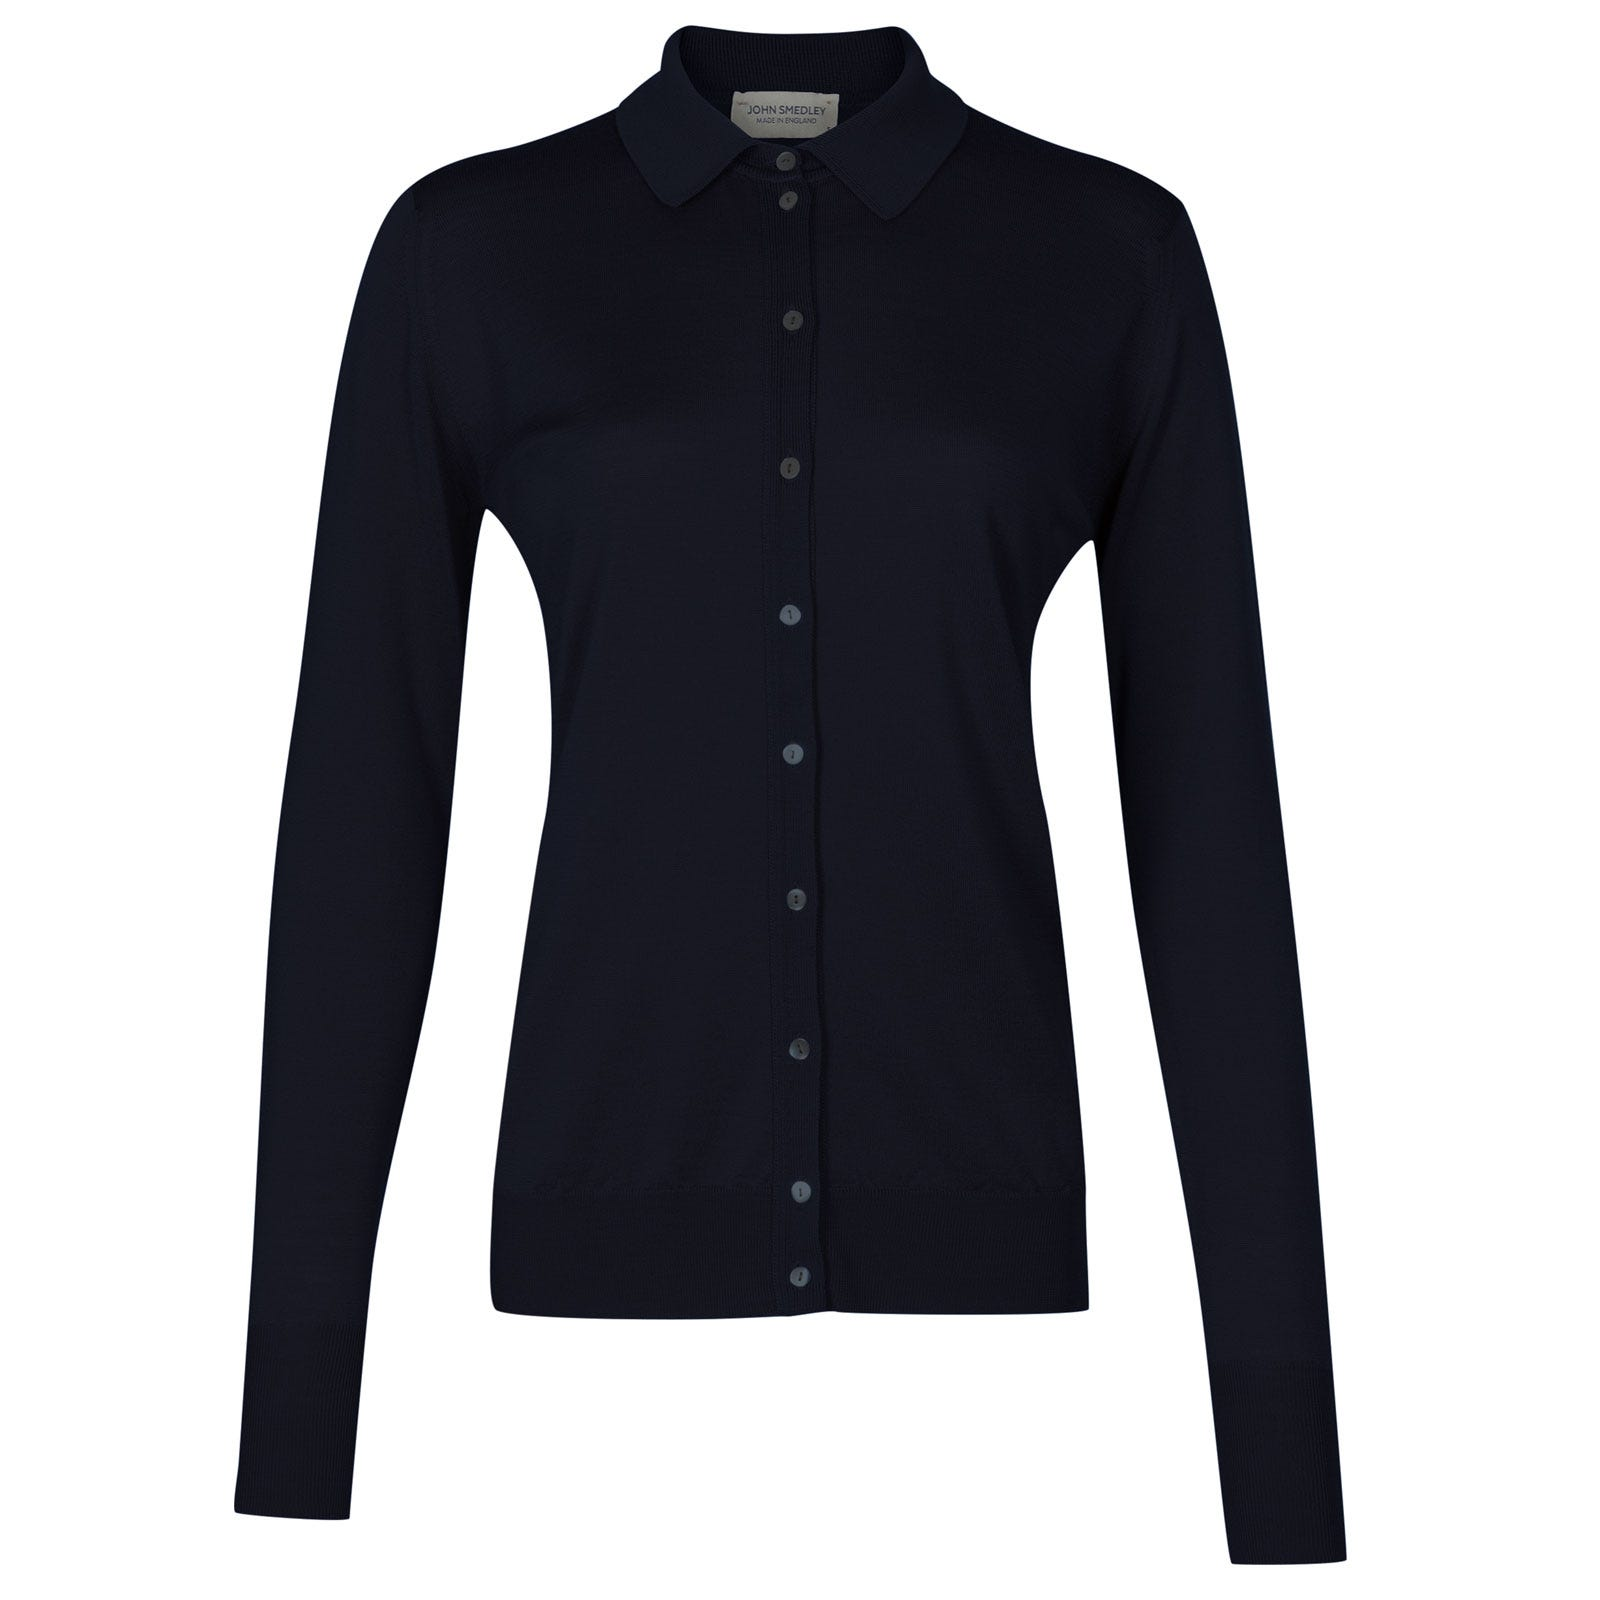 John Smedley bartley Merino Wool Shirt in Midnight-S